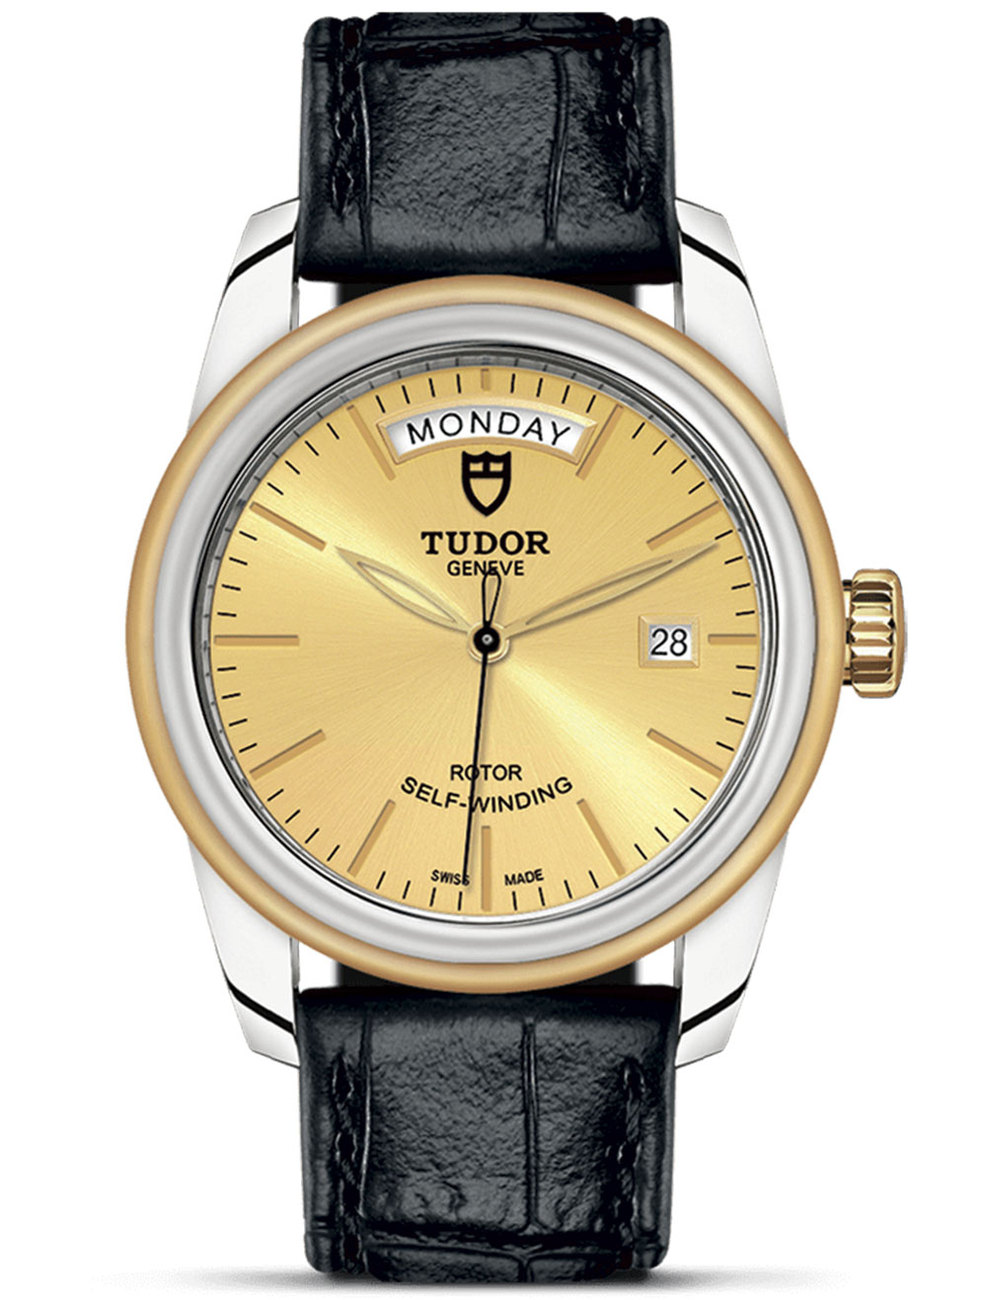 TUDOR GLAMOUR DAY-DATE 39 MM 56003-0004